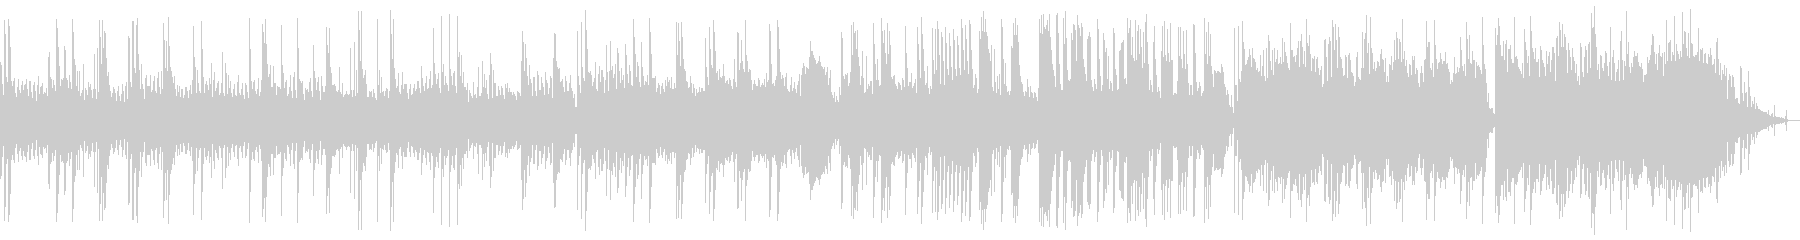 A sad but scary melody's unreproduced waveform